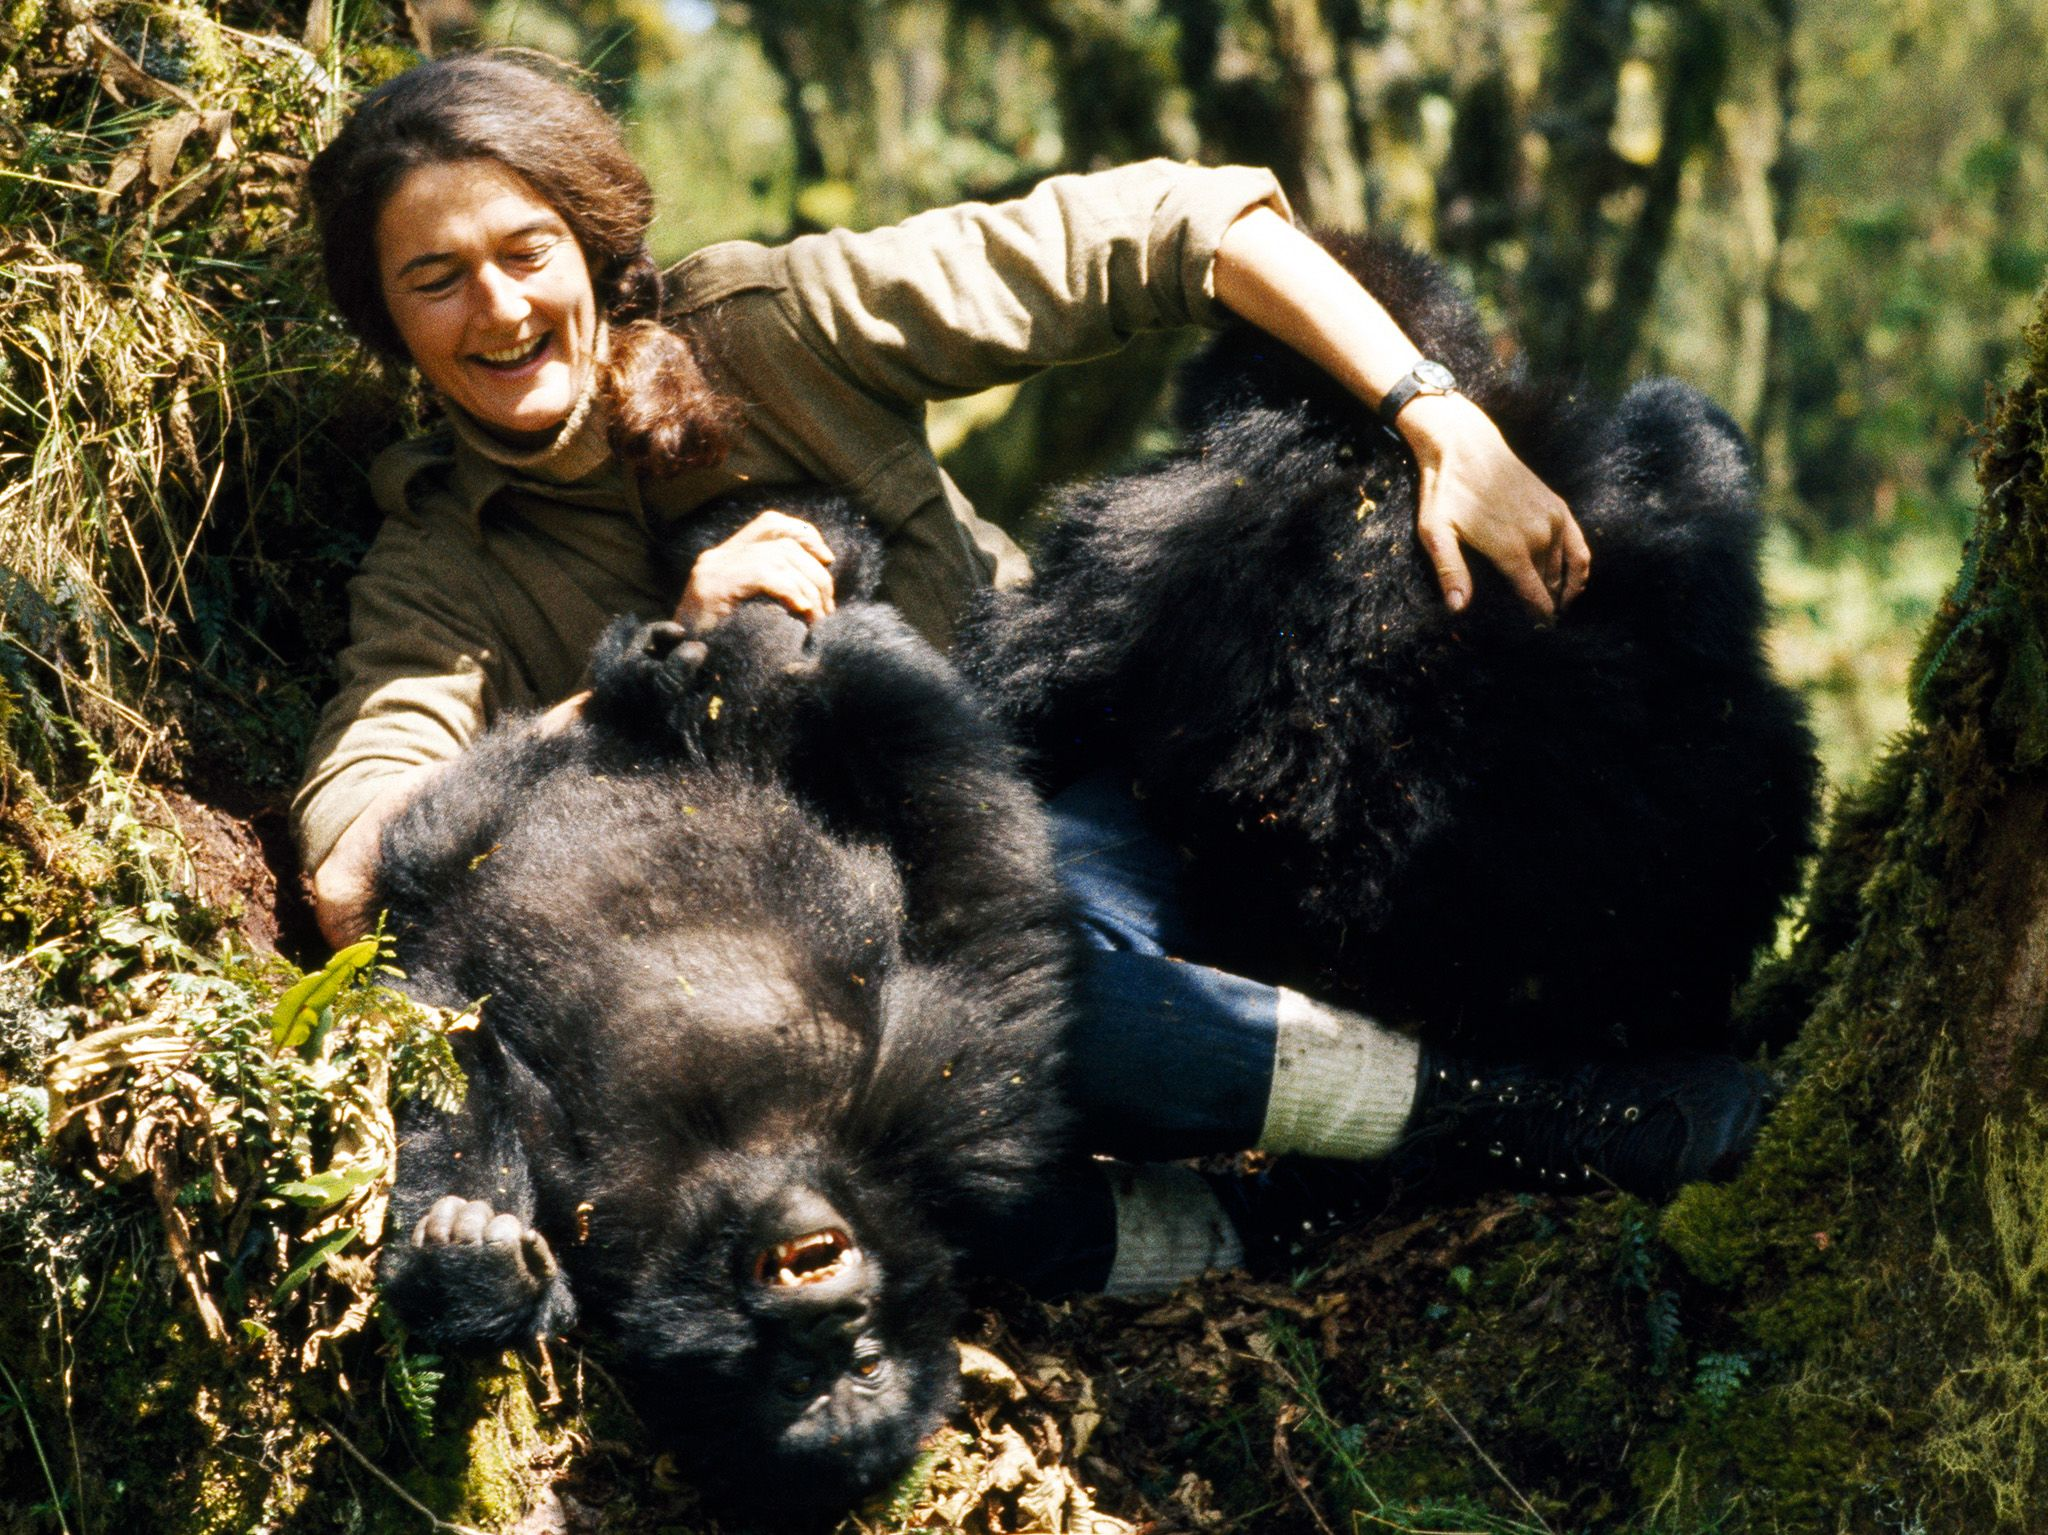 Dian Fossey plays with two young mountain gorillas in the wild. This image is from Dian Fossey:... [Photo of the day - 十二月 2017]